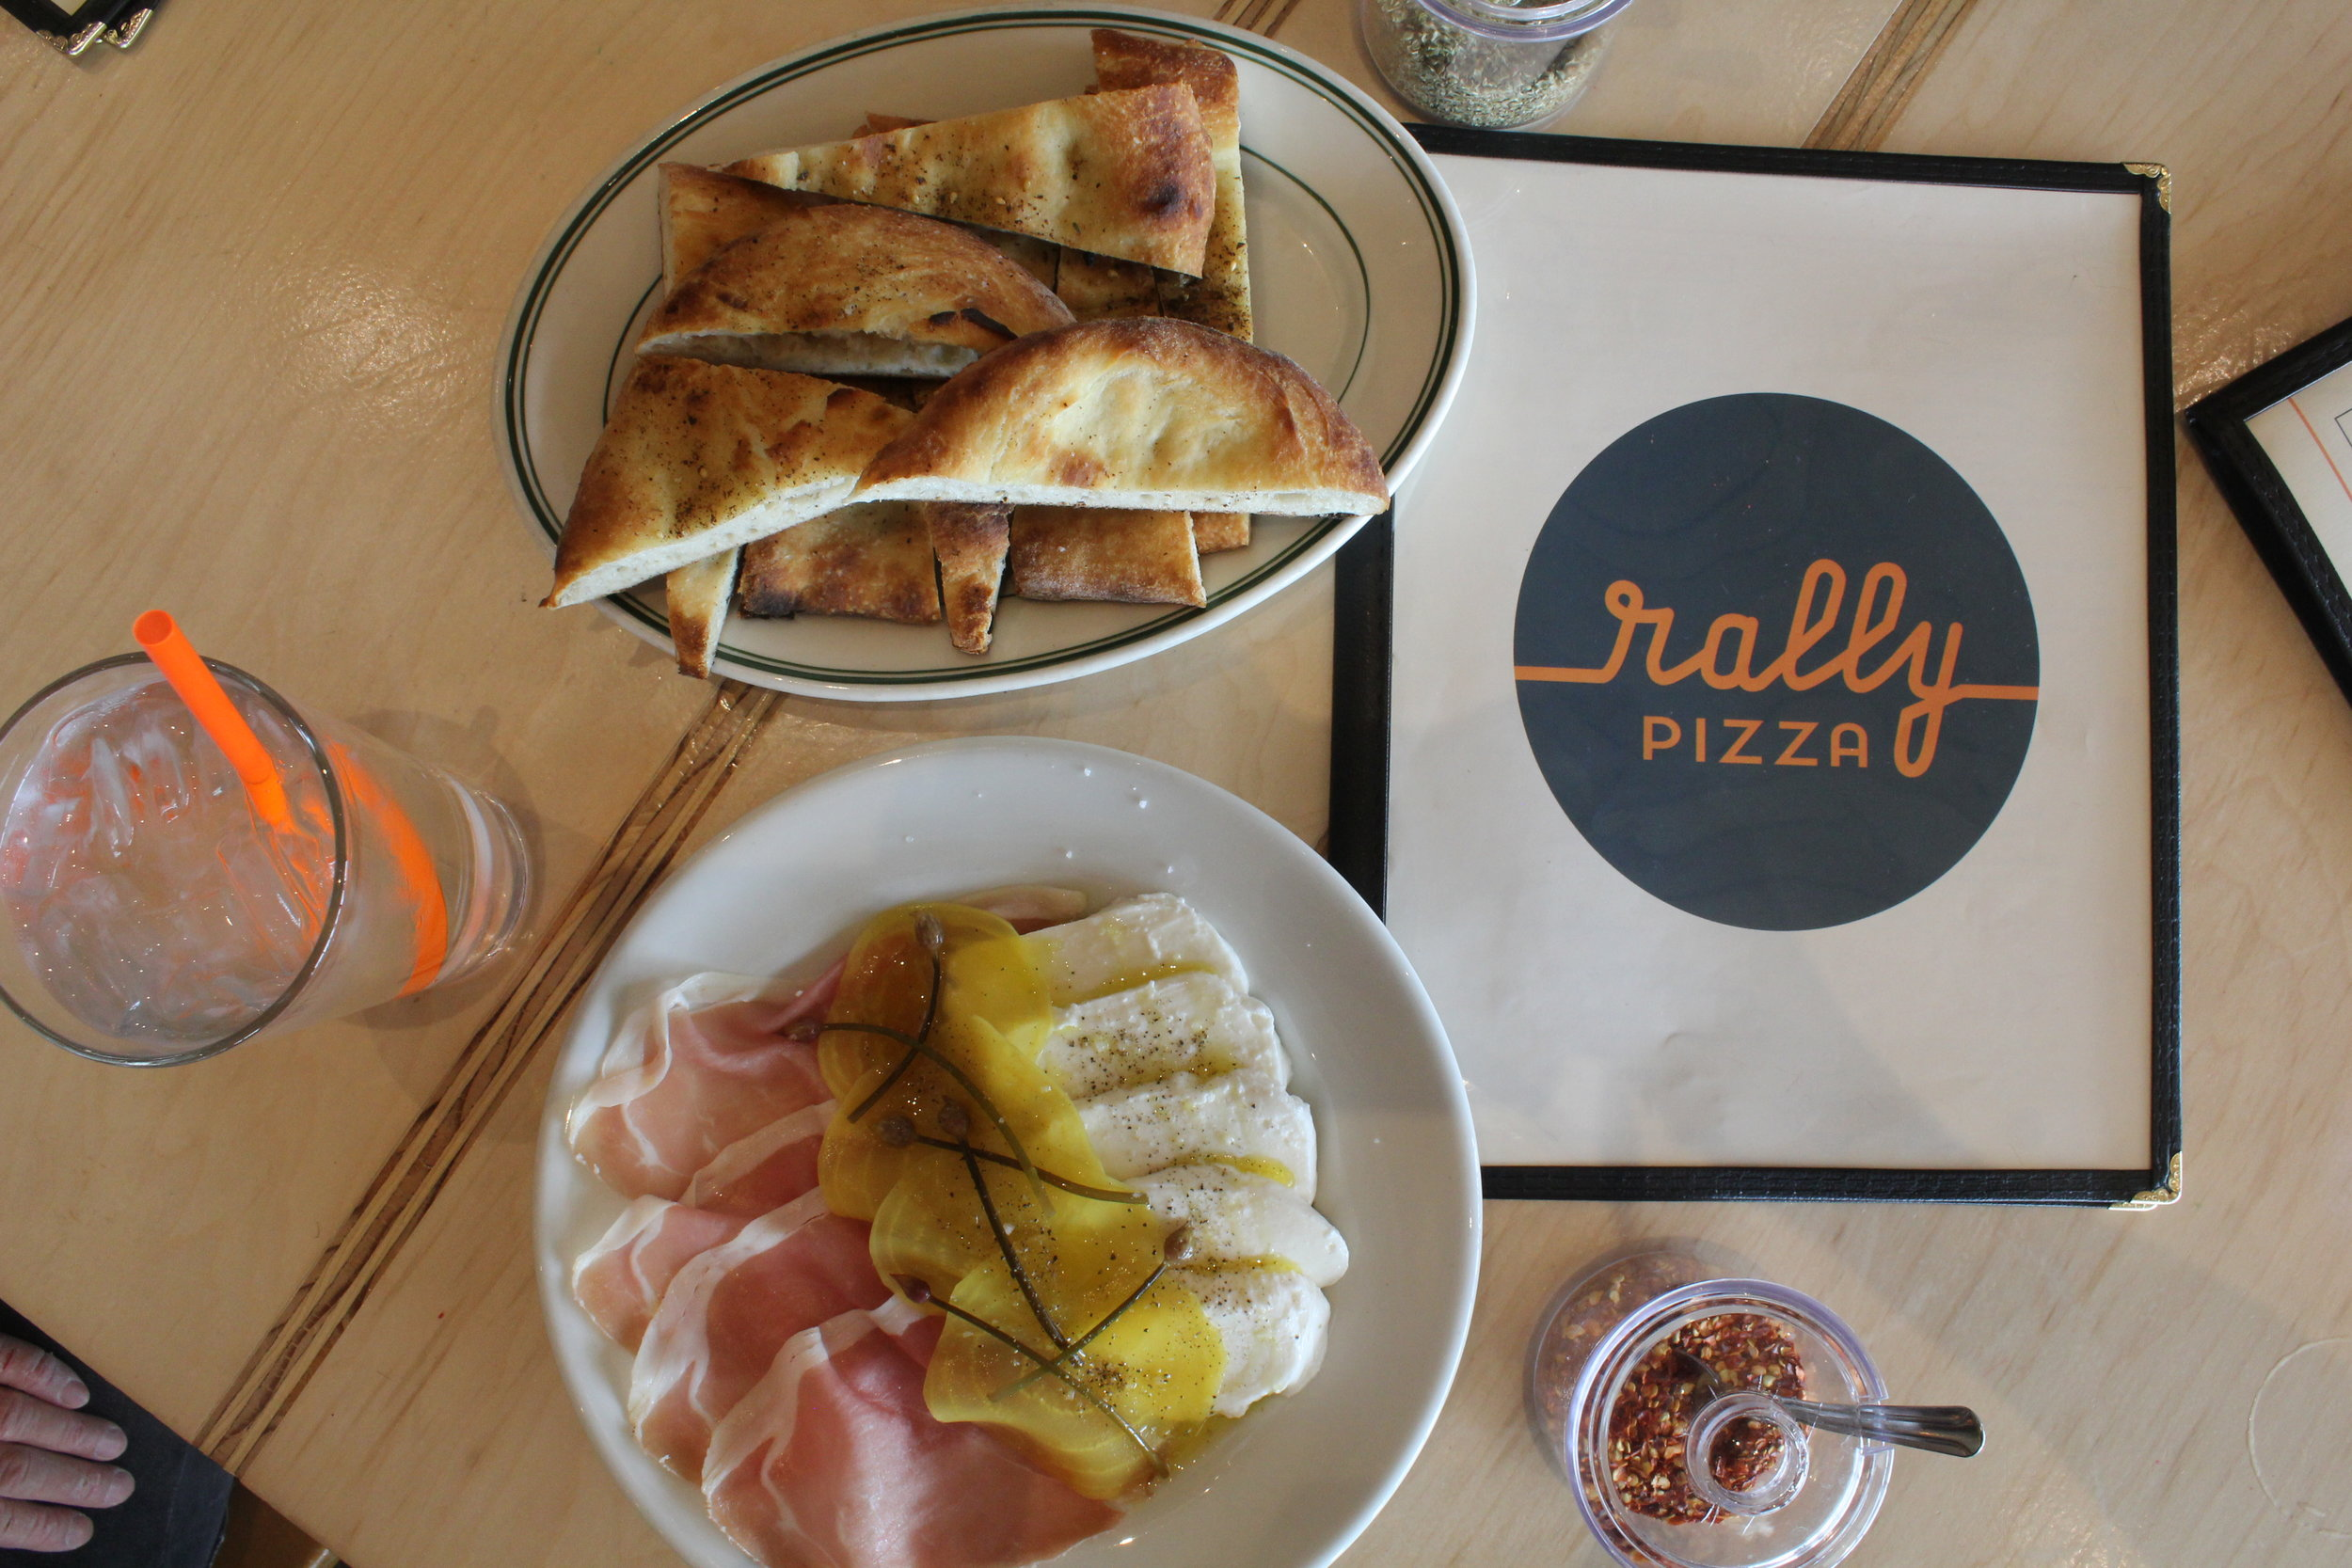 RALLY PIZZA IN VANCOUVER, WA IS YOUR NEXT FAMILY PIZZA NIGHT